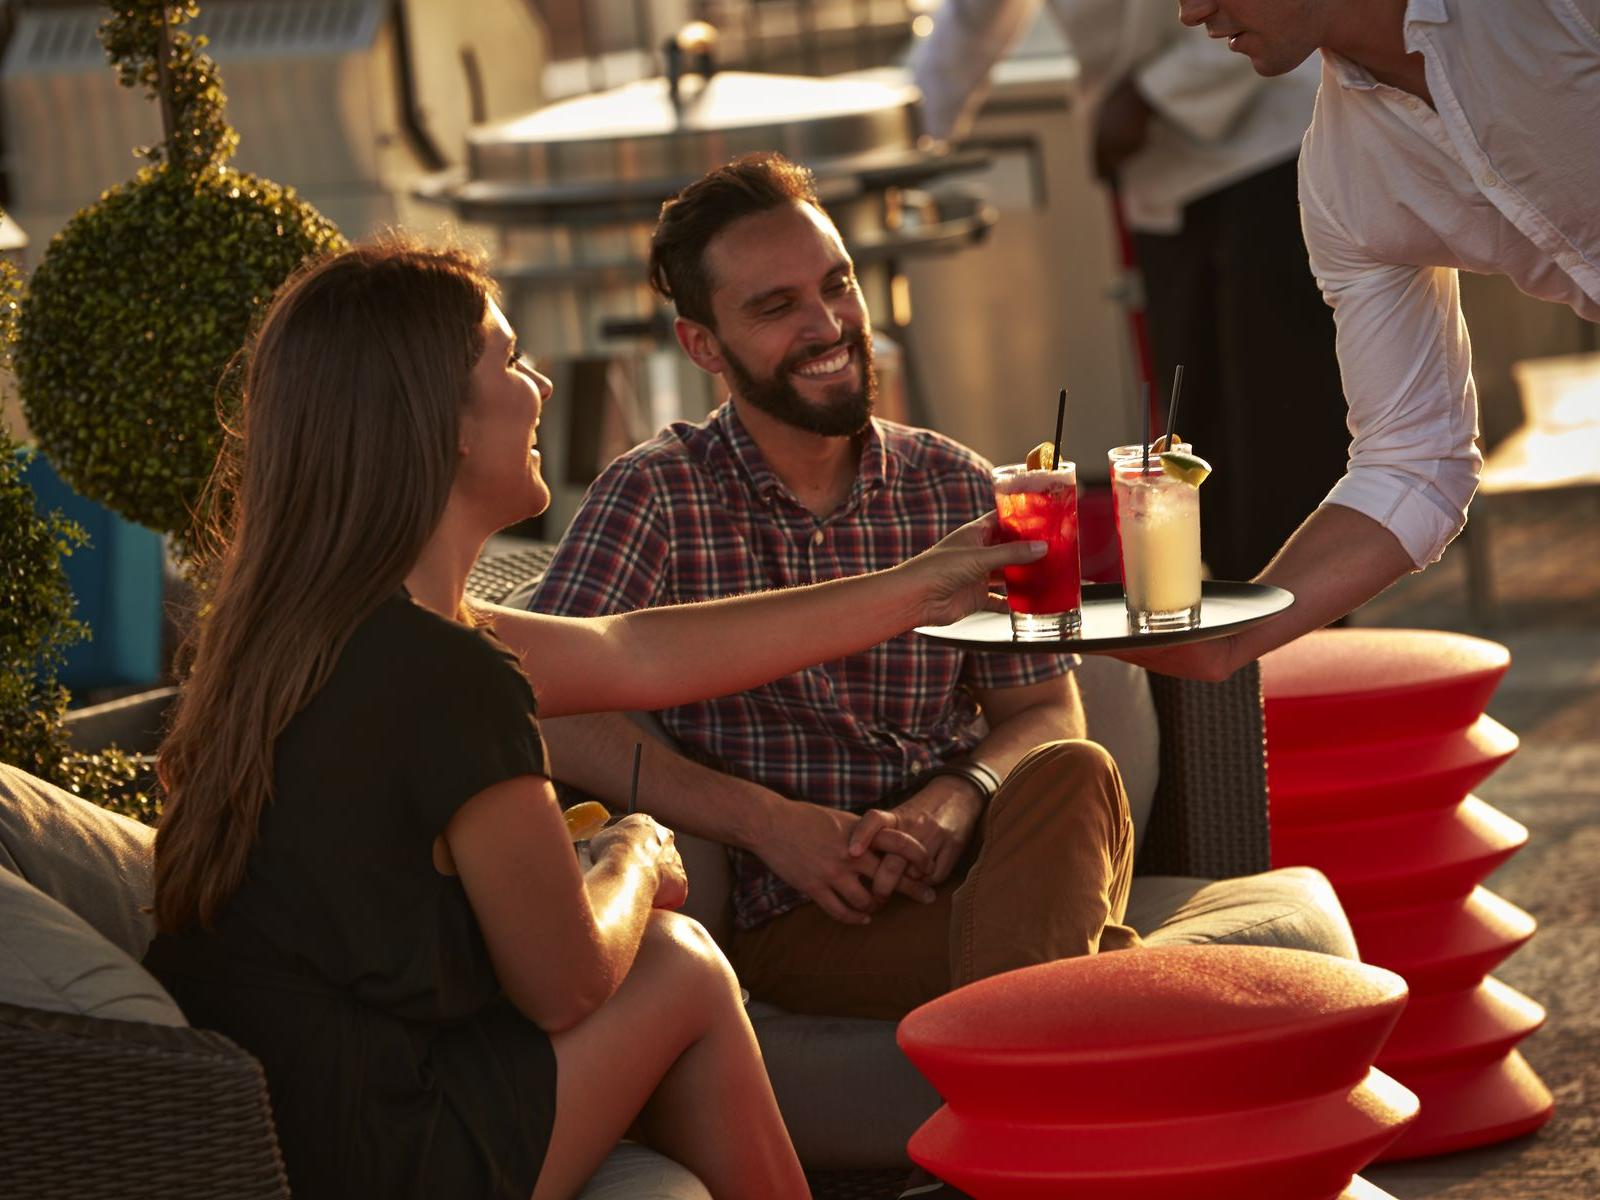 Guests enjoying drinks at rooftop patio